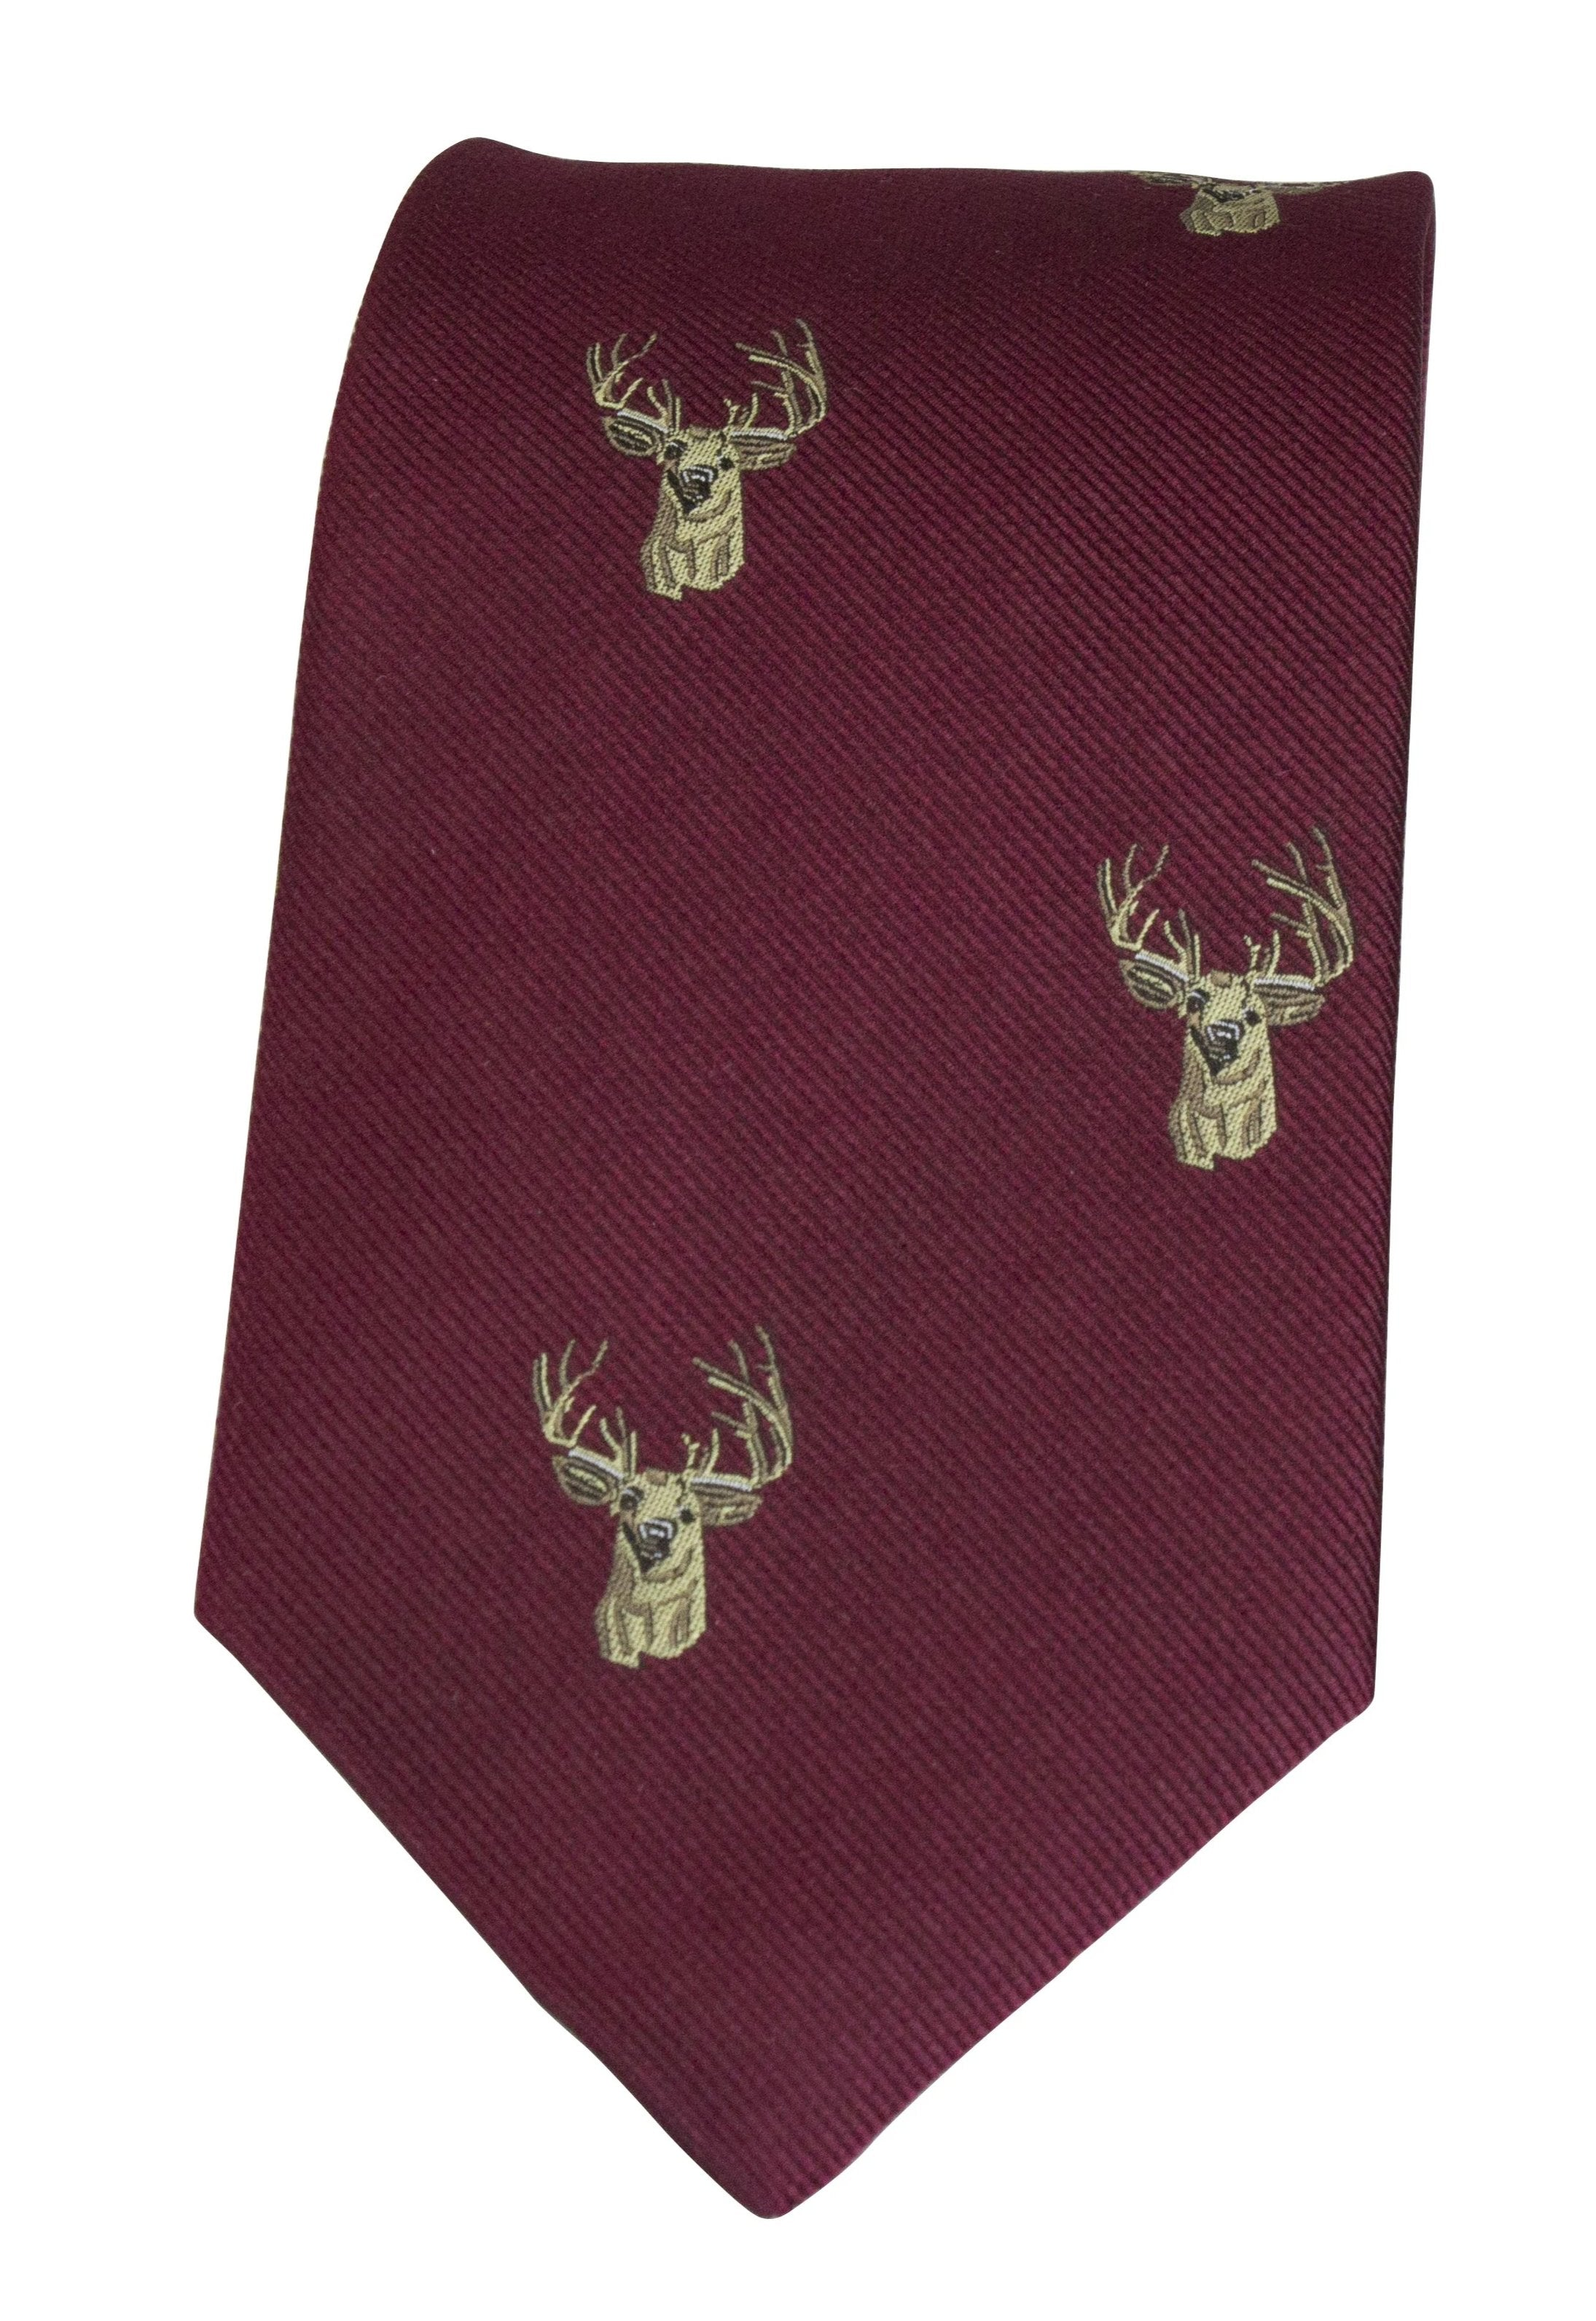 GT11 - 100% Silk Woven Tie - Stag - WINE - Oxford Blue